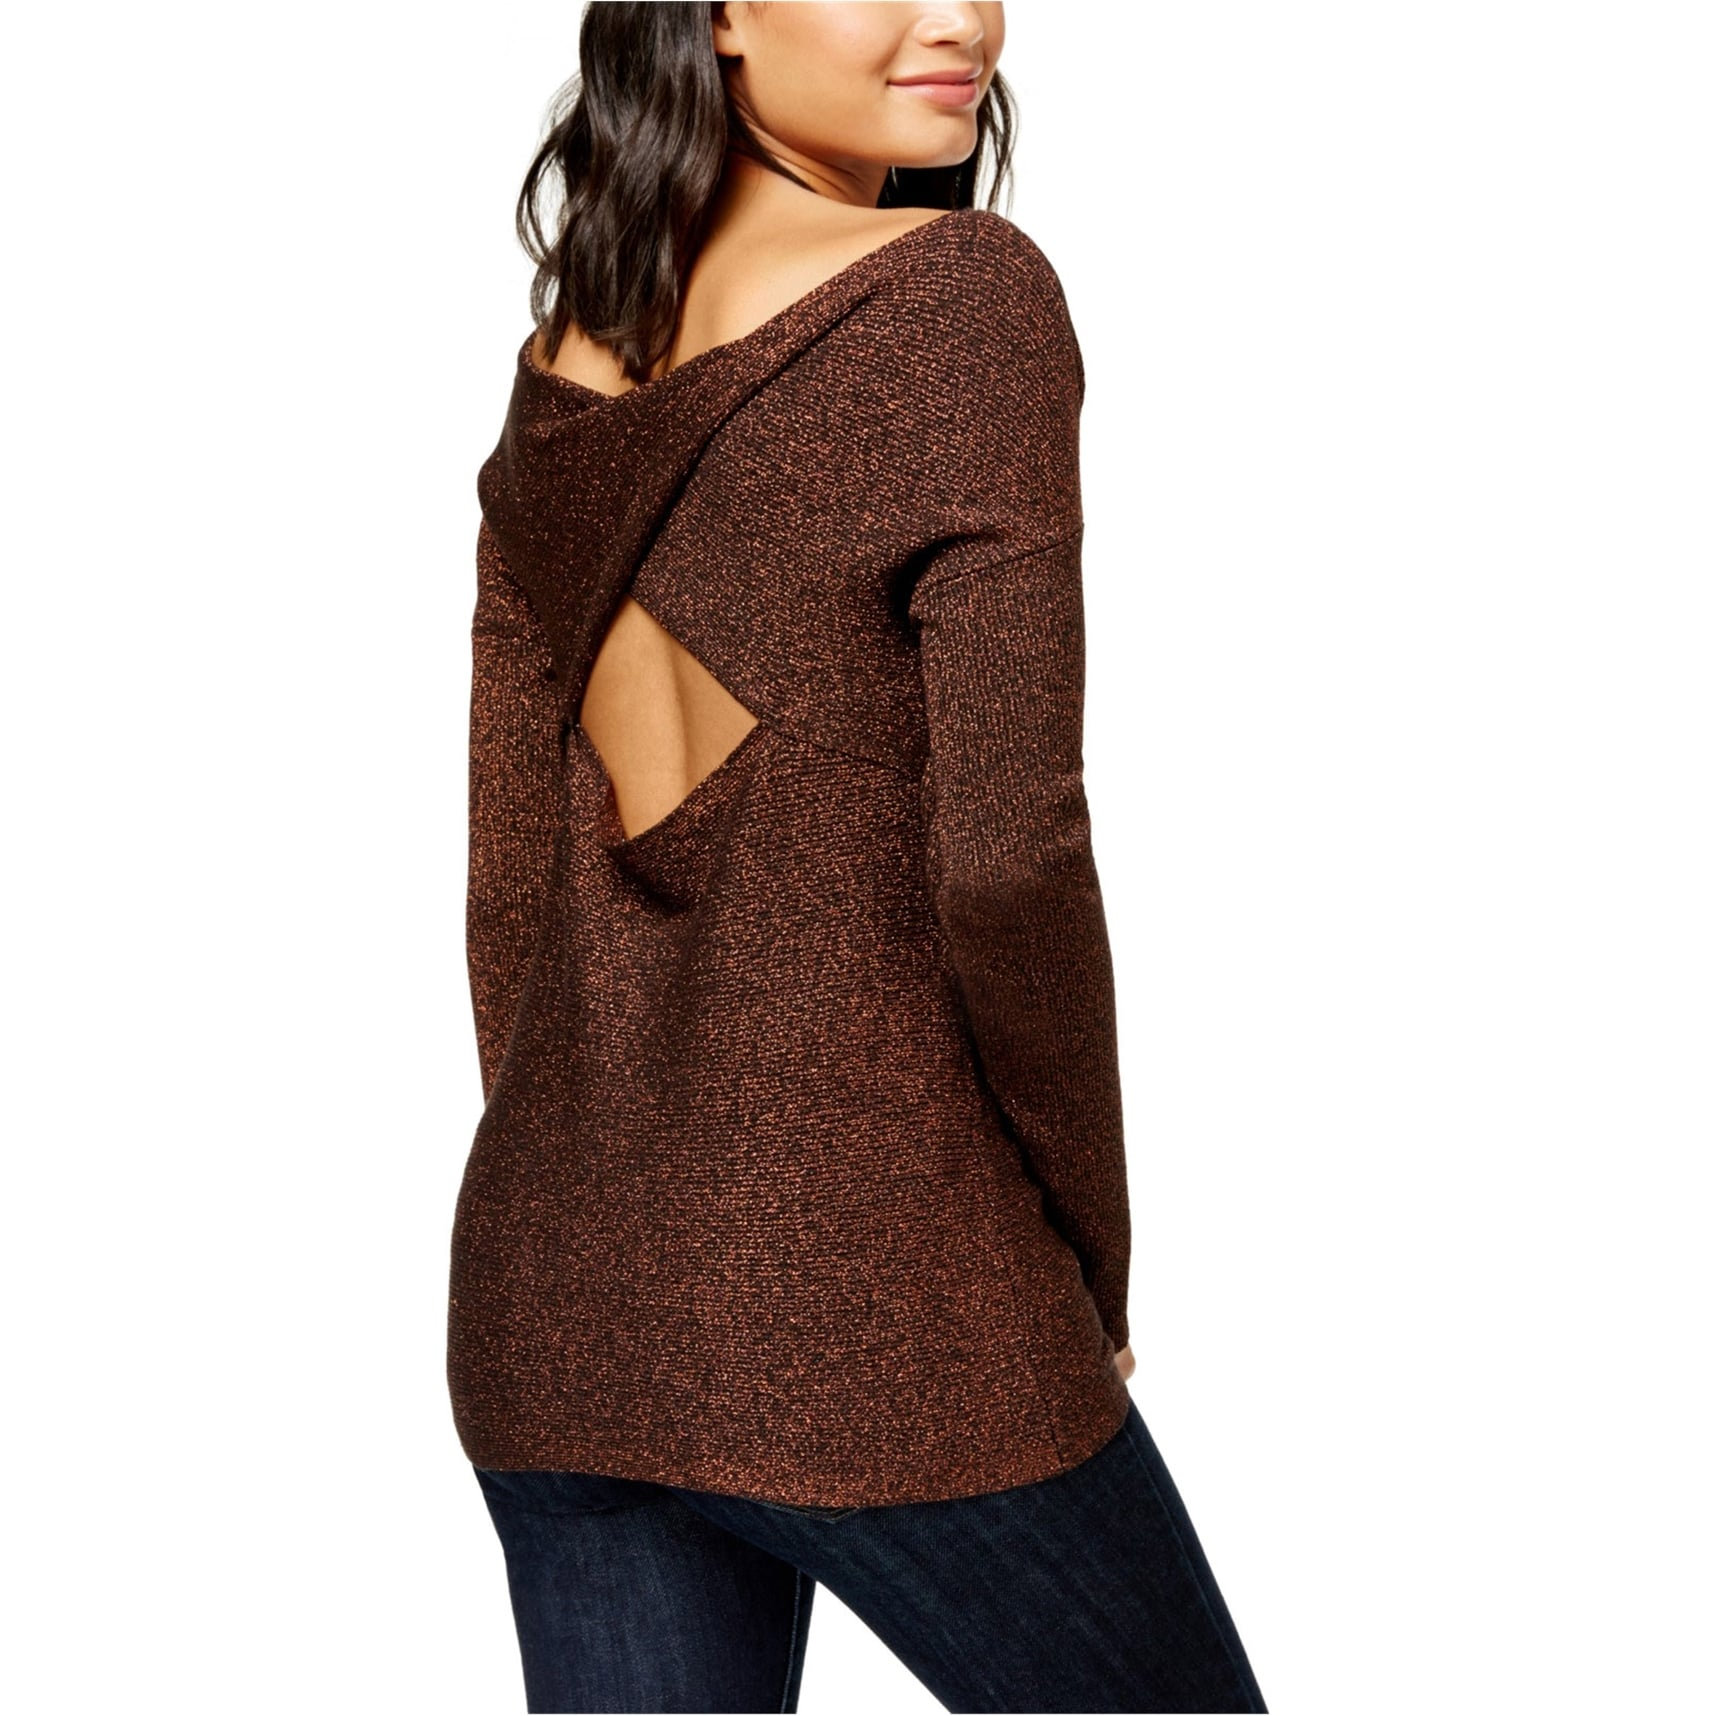 Bar IIIMulti-Crochet SweaterCreamM